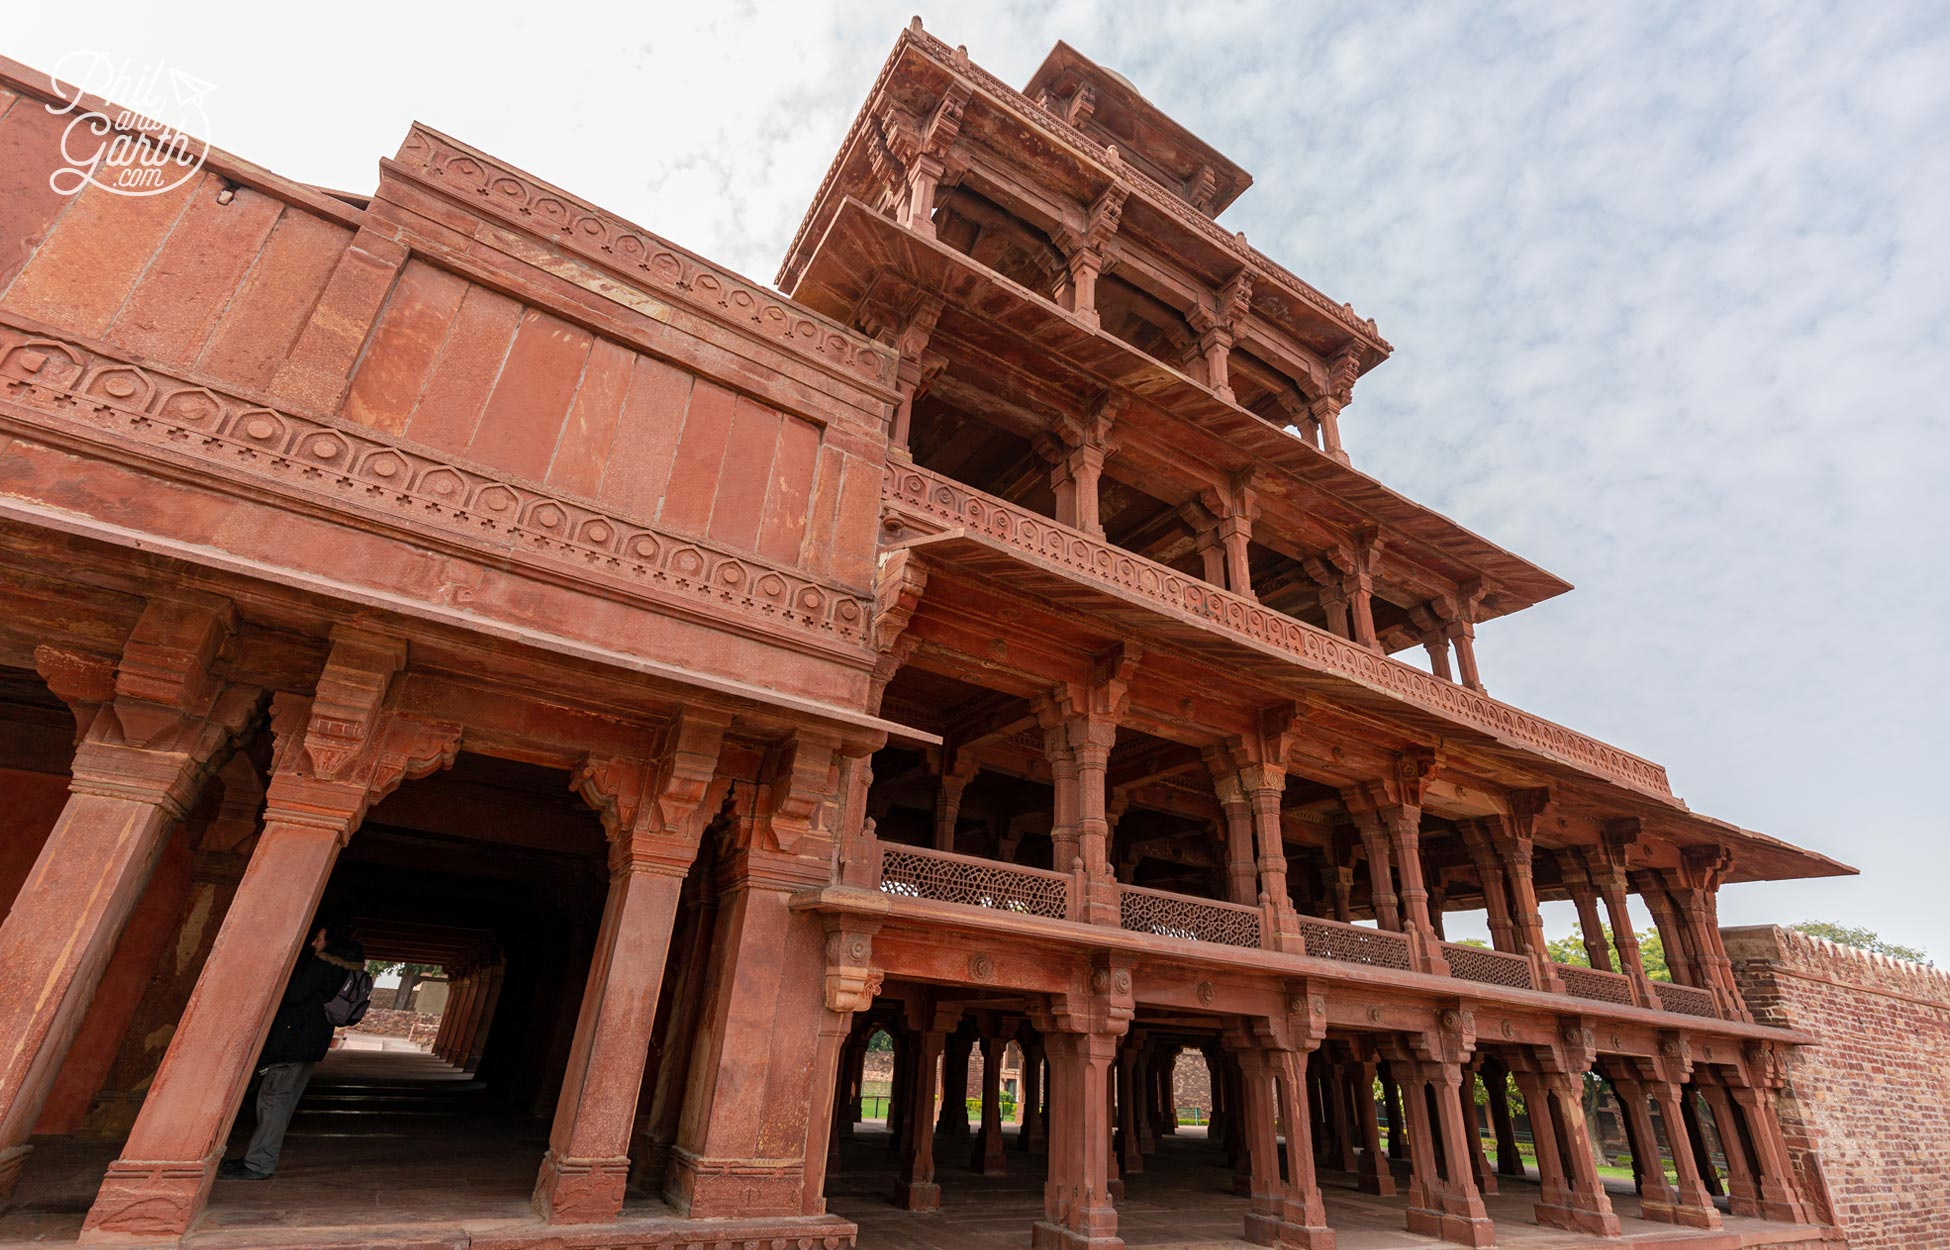 The Panch Mahal - a 5 storey palace for the Queens and other ladies of the court to use for recreation